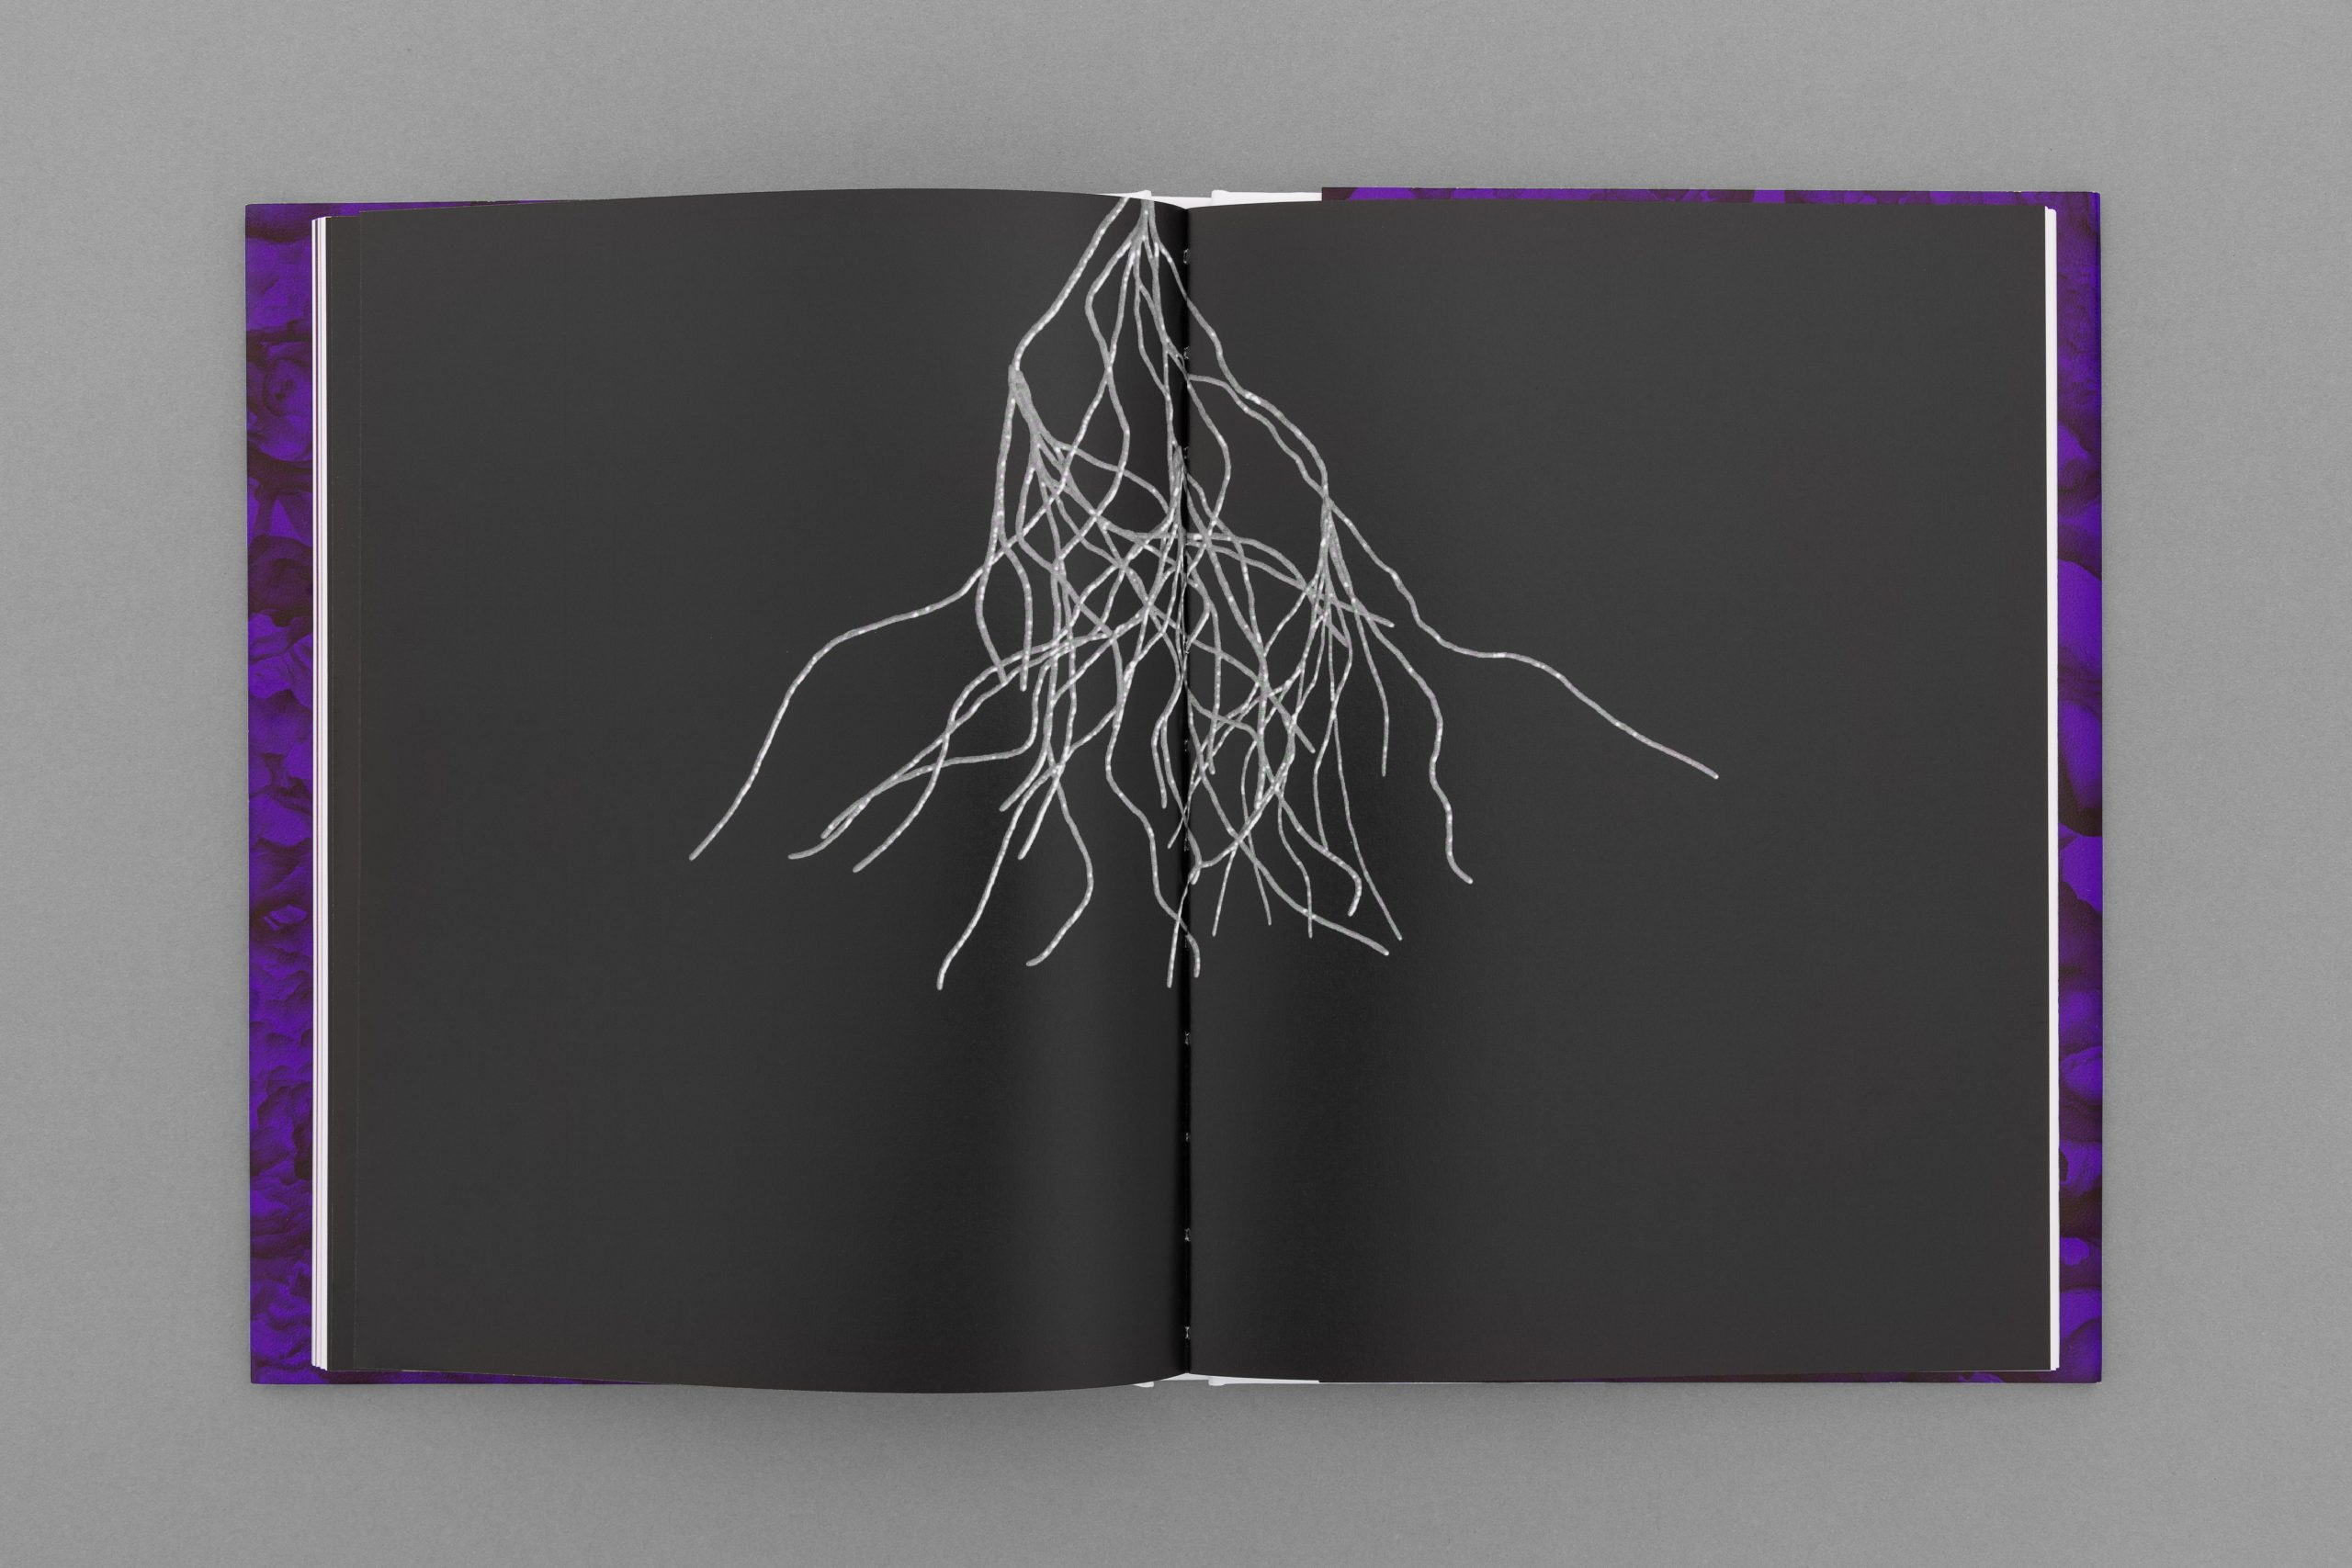 João M. Machado – Diana Policarpo – Nets of Hyphae (9 of 15)